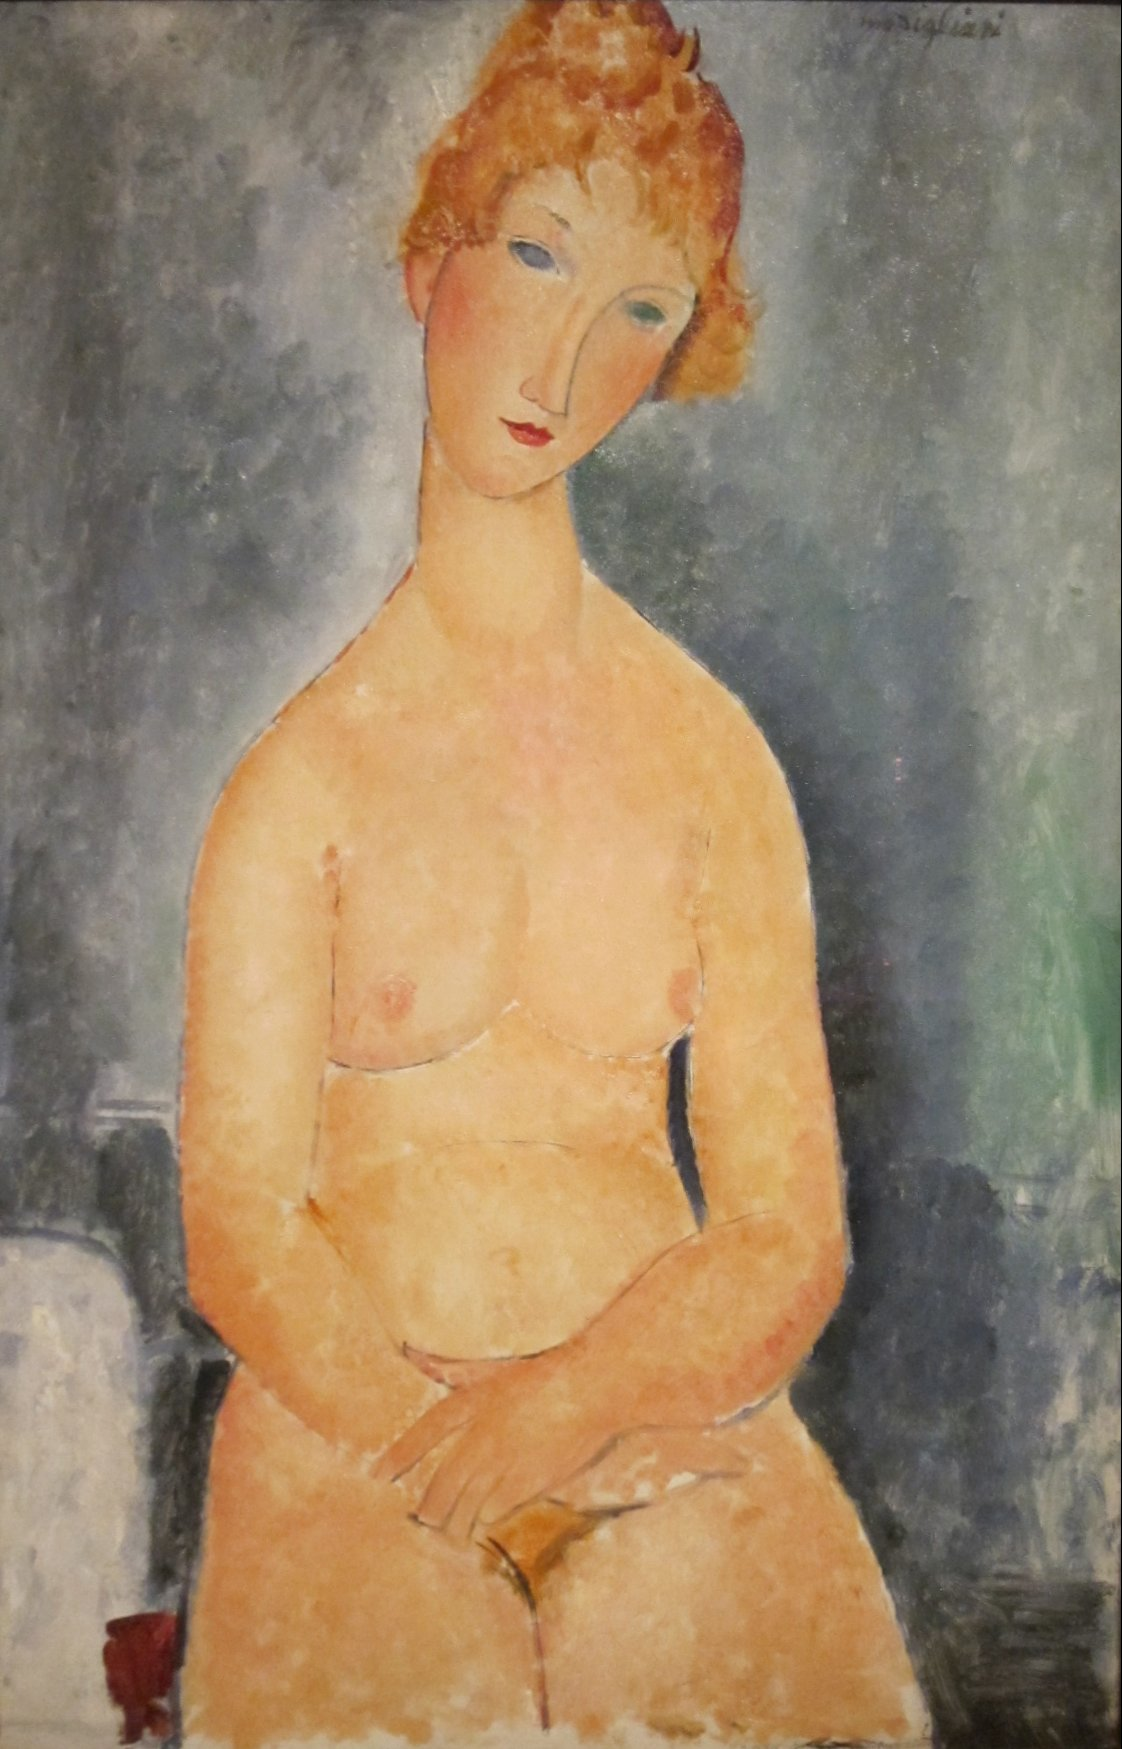 http://upload.wikimedia.org/wikipedia/commons/9/91/Amedeo_Modigliani_%281884-1920%29_-_Seated_Nude%2C_1918.jpg